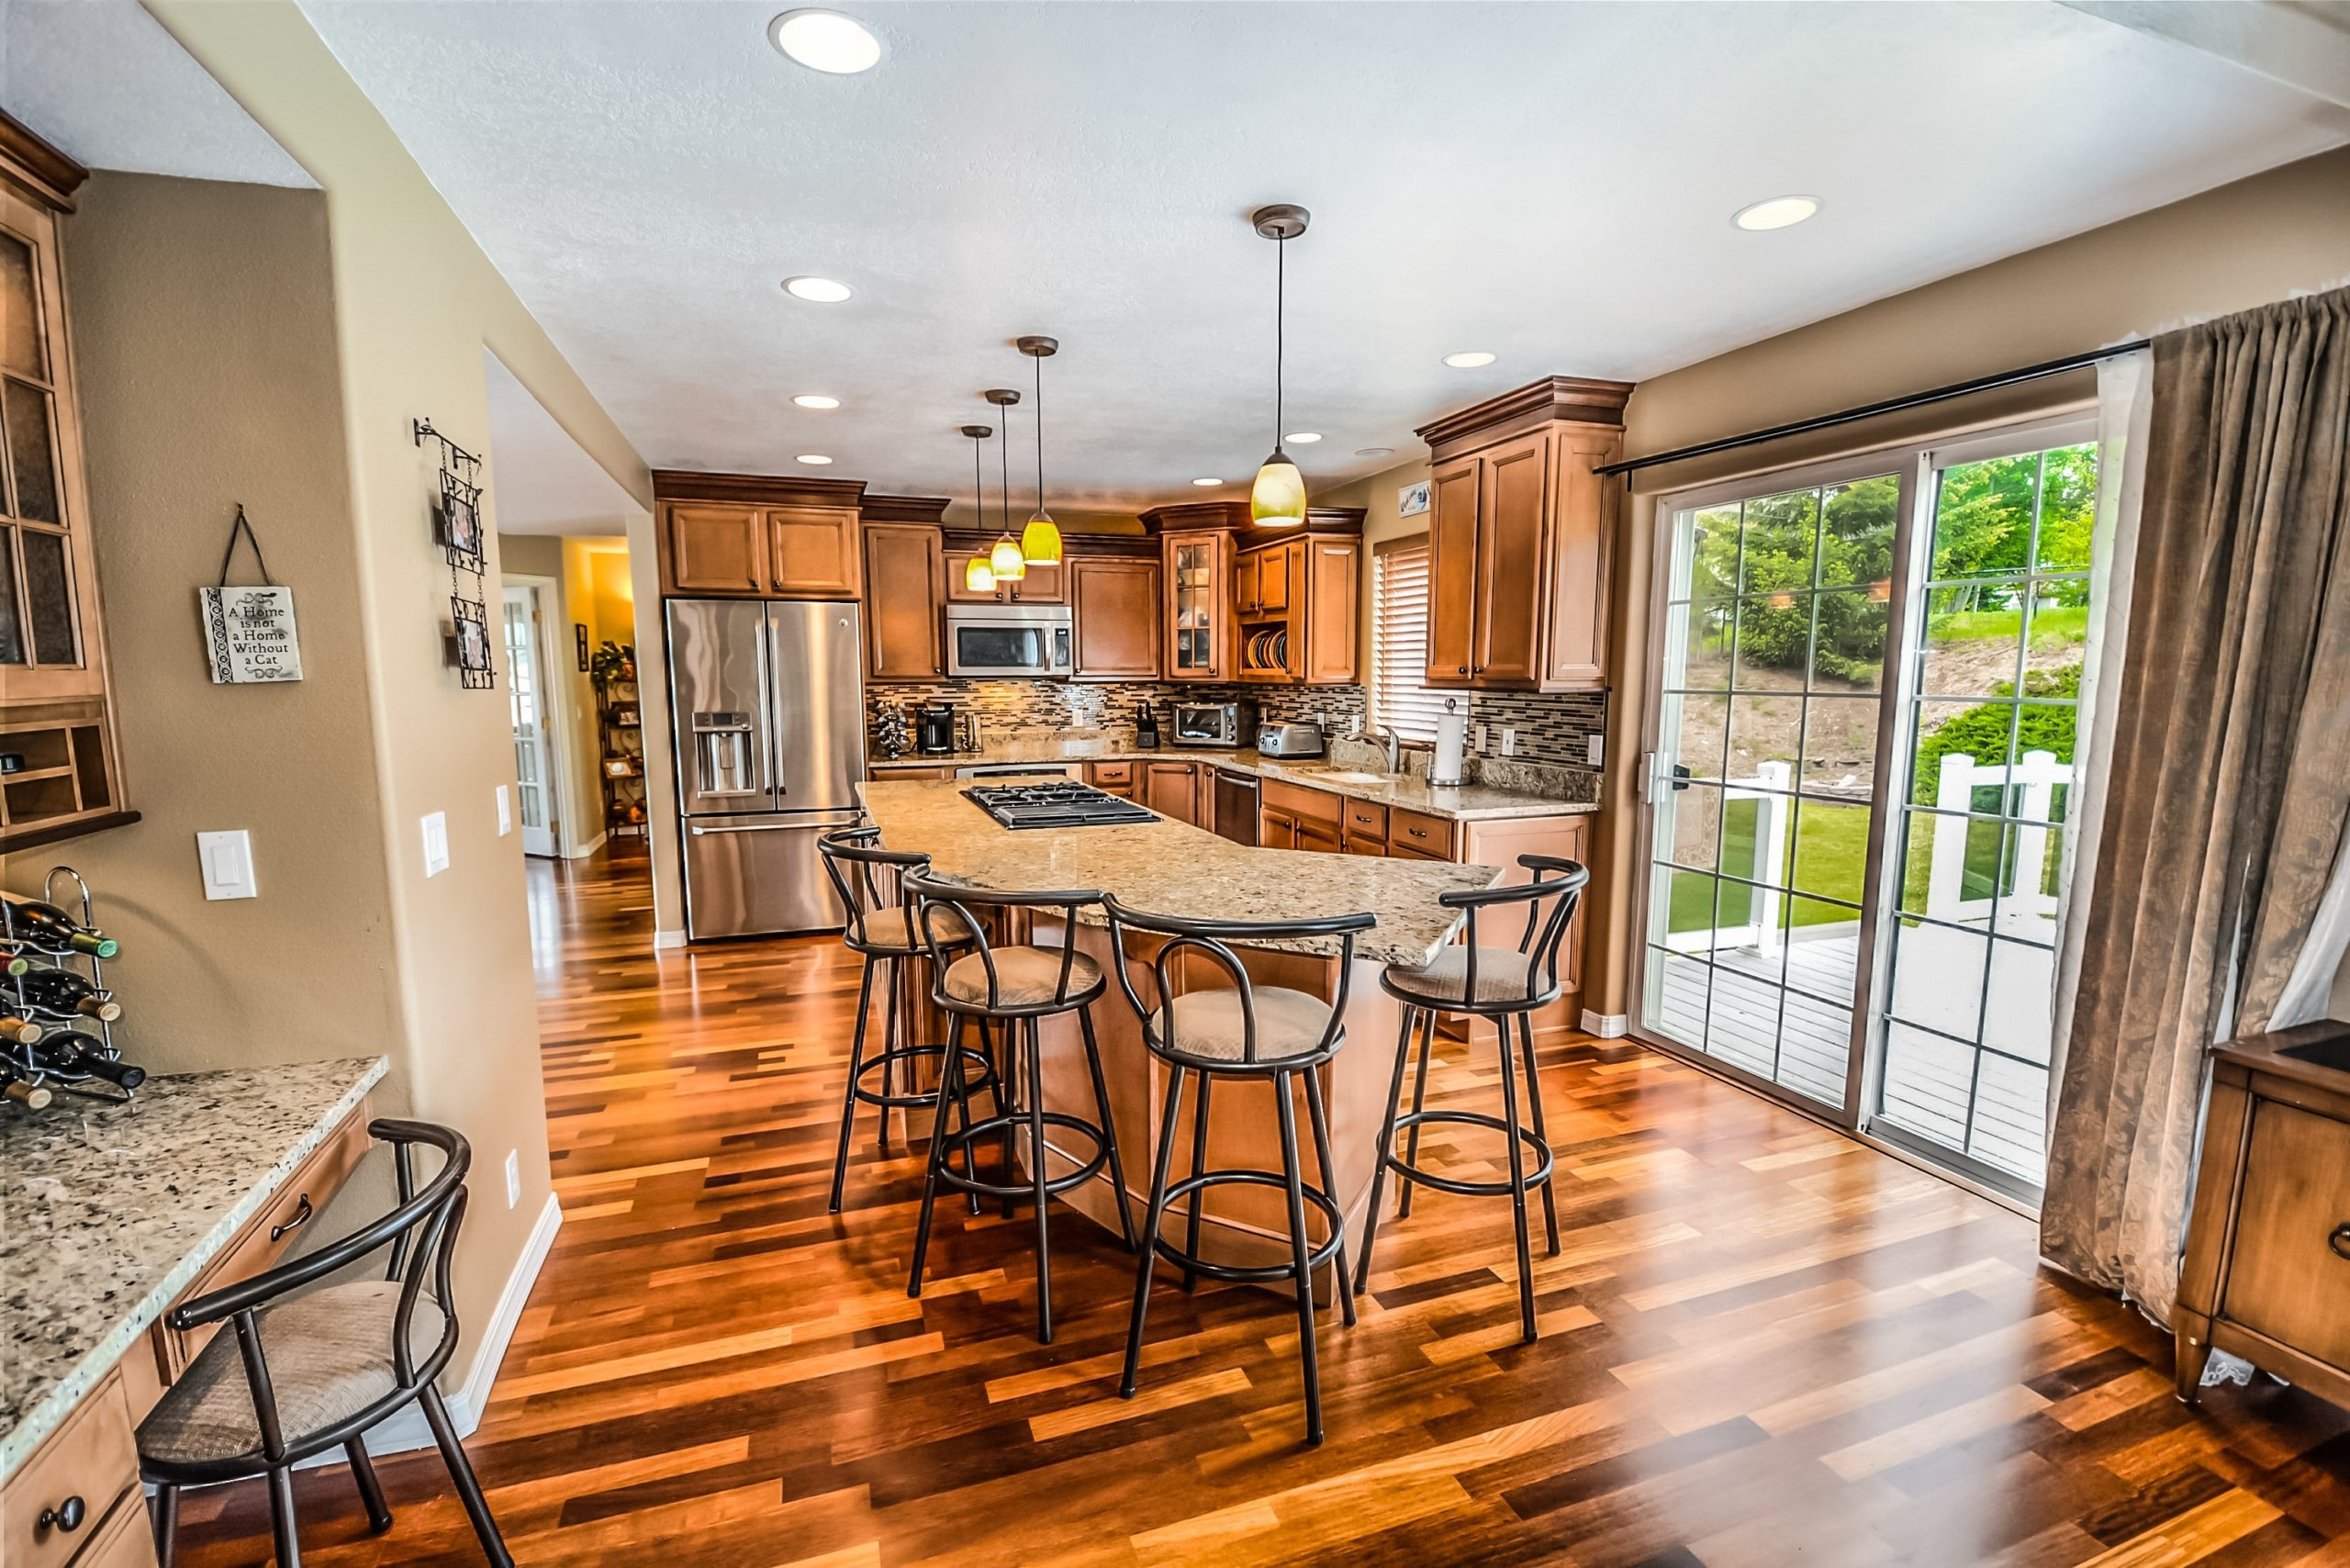 All About Waterproof Flooring for Your Home